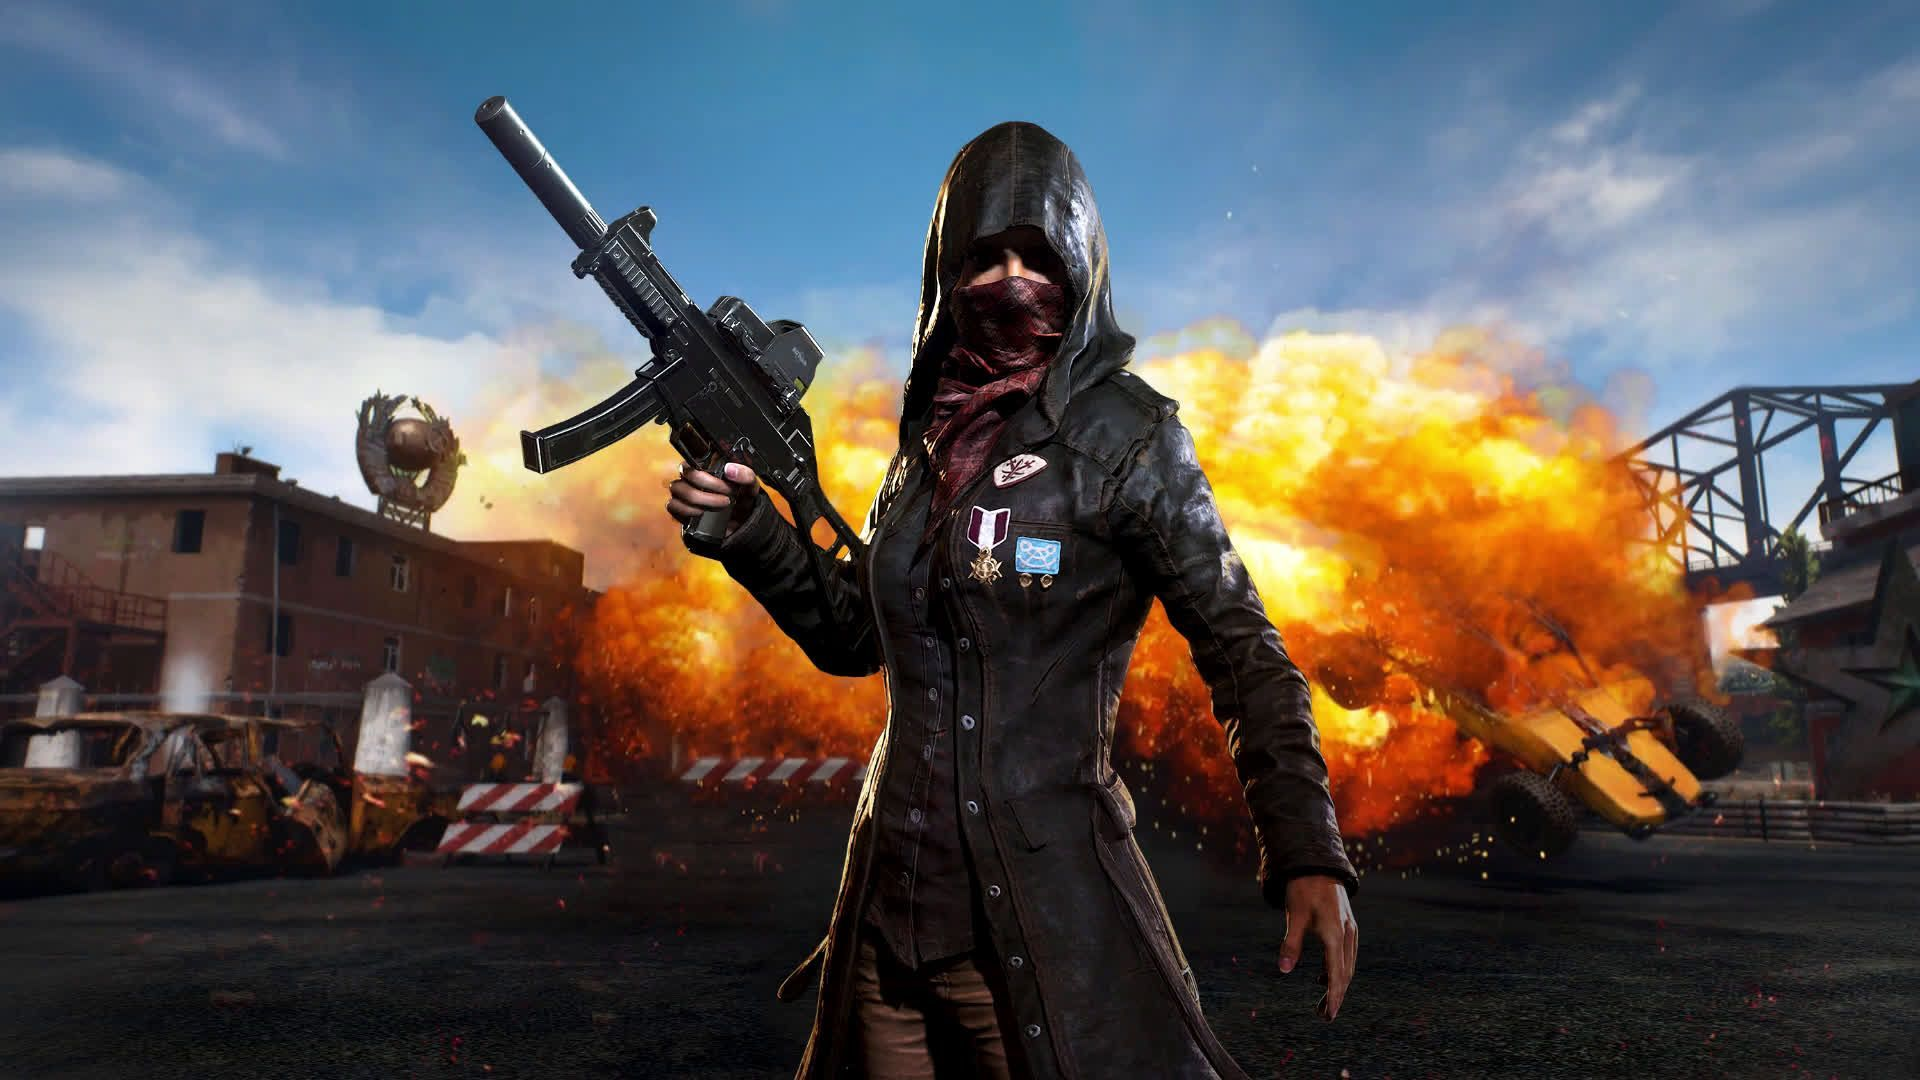 Player Unknown S Battlegrounds Pubg 4k Pubg Wallpaper Phone Pubg Wallpaper Iphone Pubg Wallpaper 1920x1080 H Best Android Games Battle Royale Game Xbox One